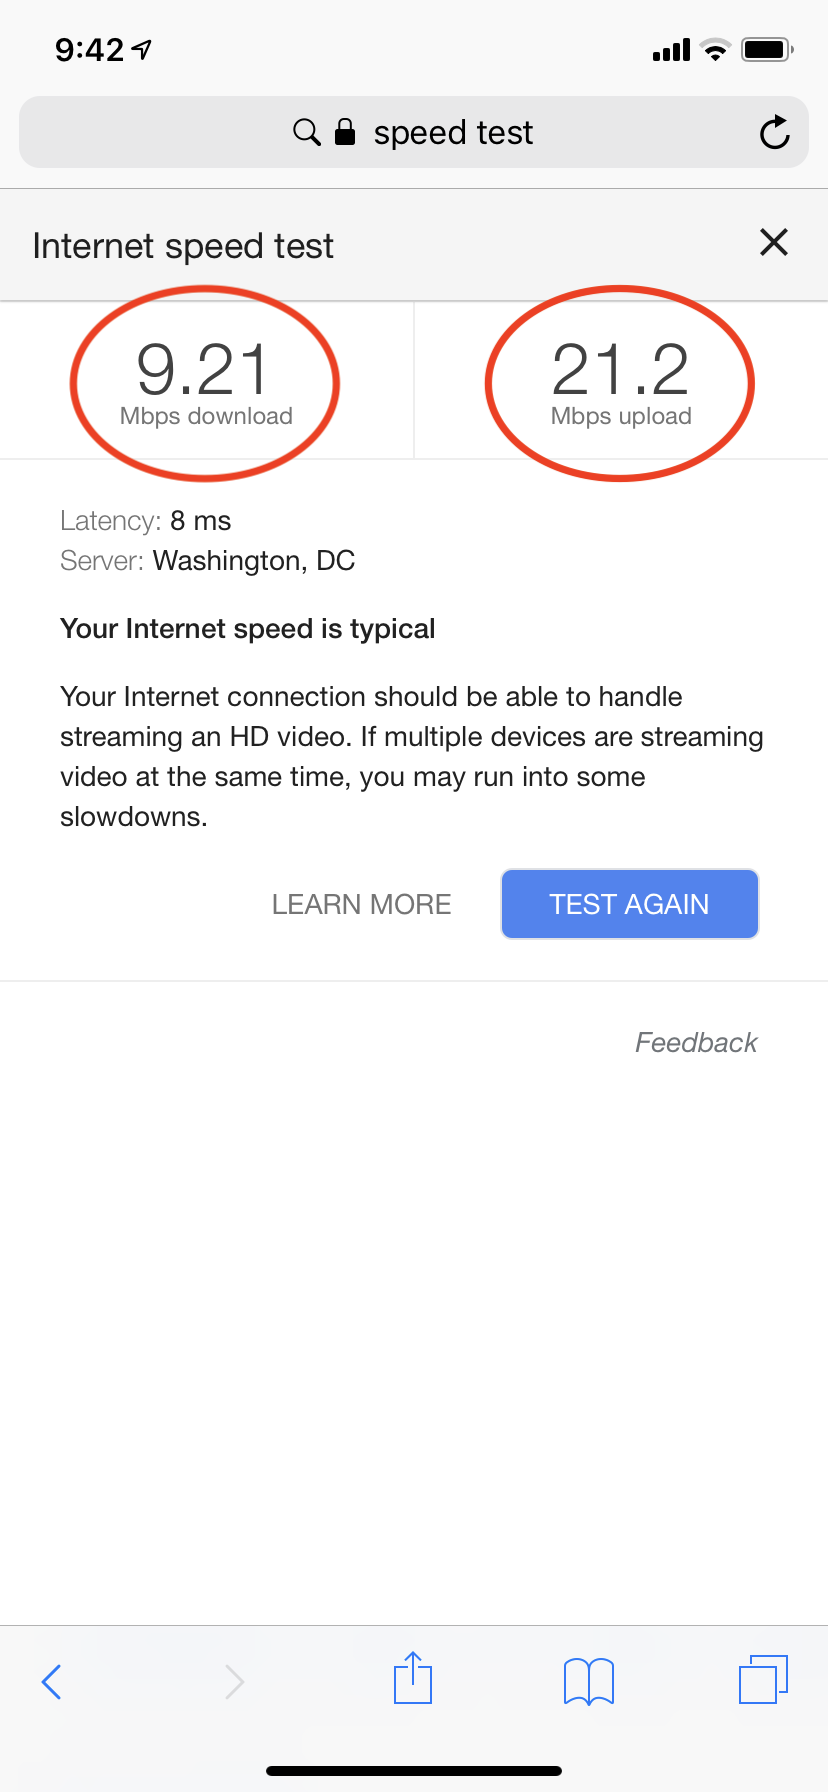 speed-test-result.png